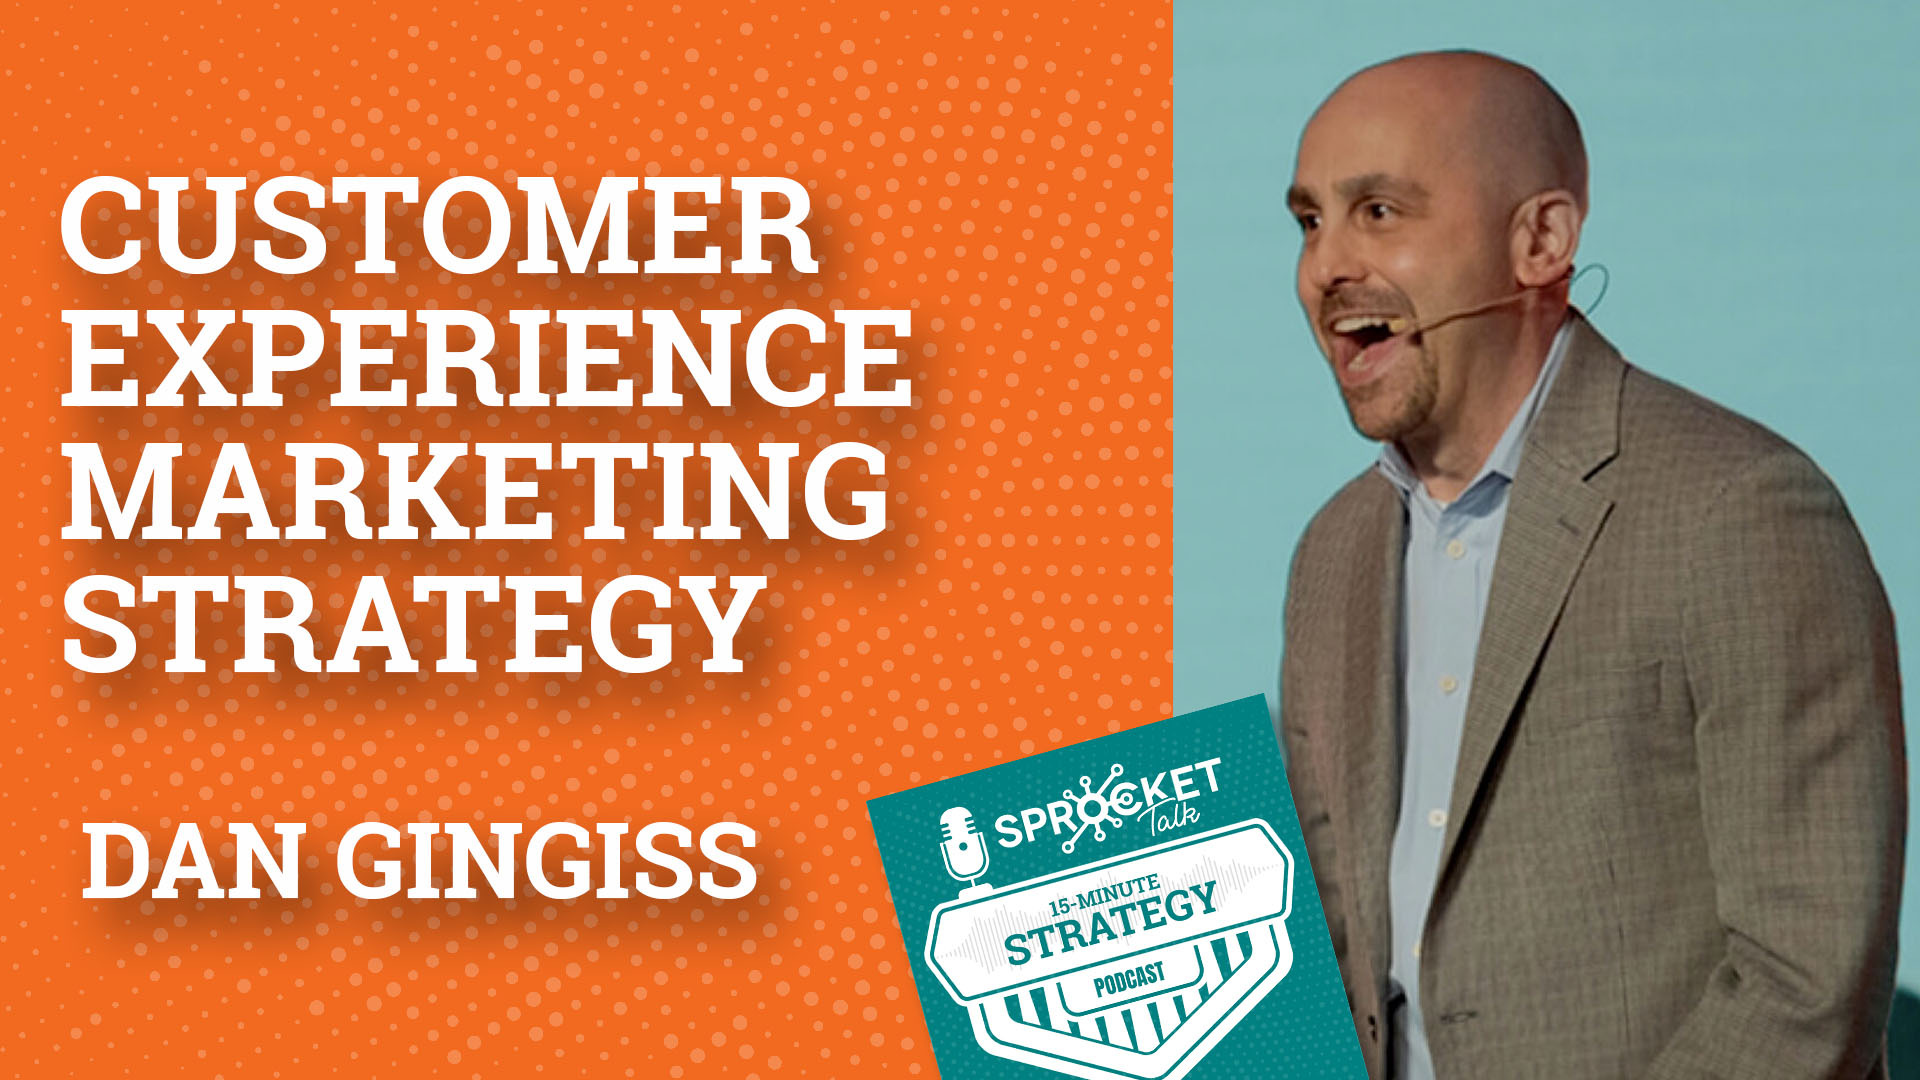 Dan Gingiss on Customer Experience as the New Marketing Strategy